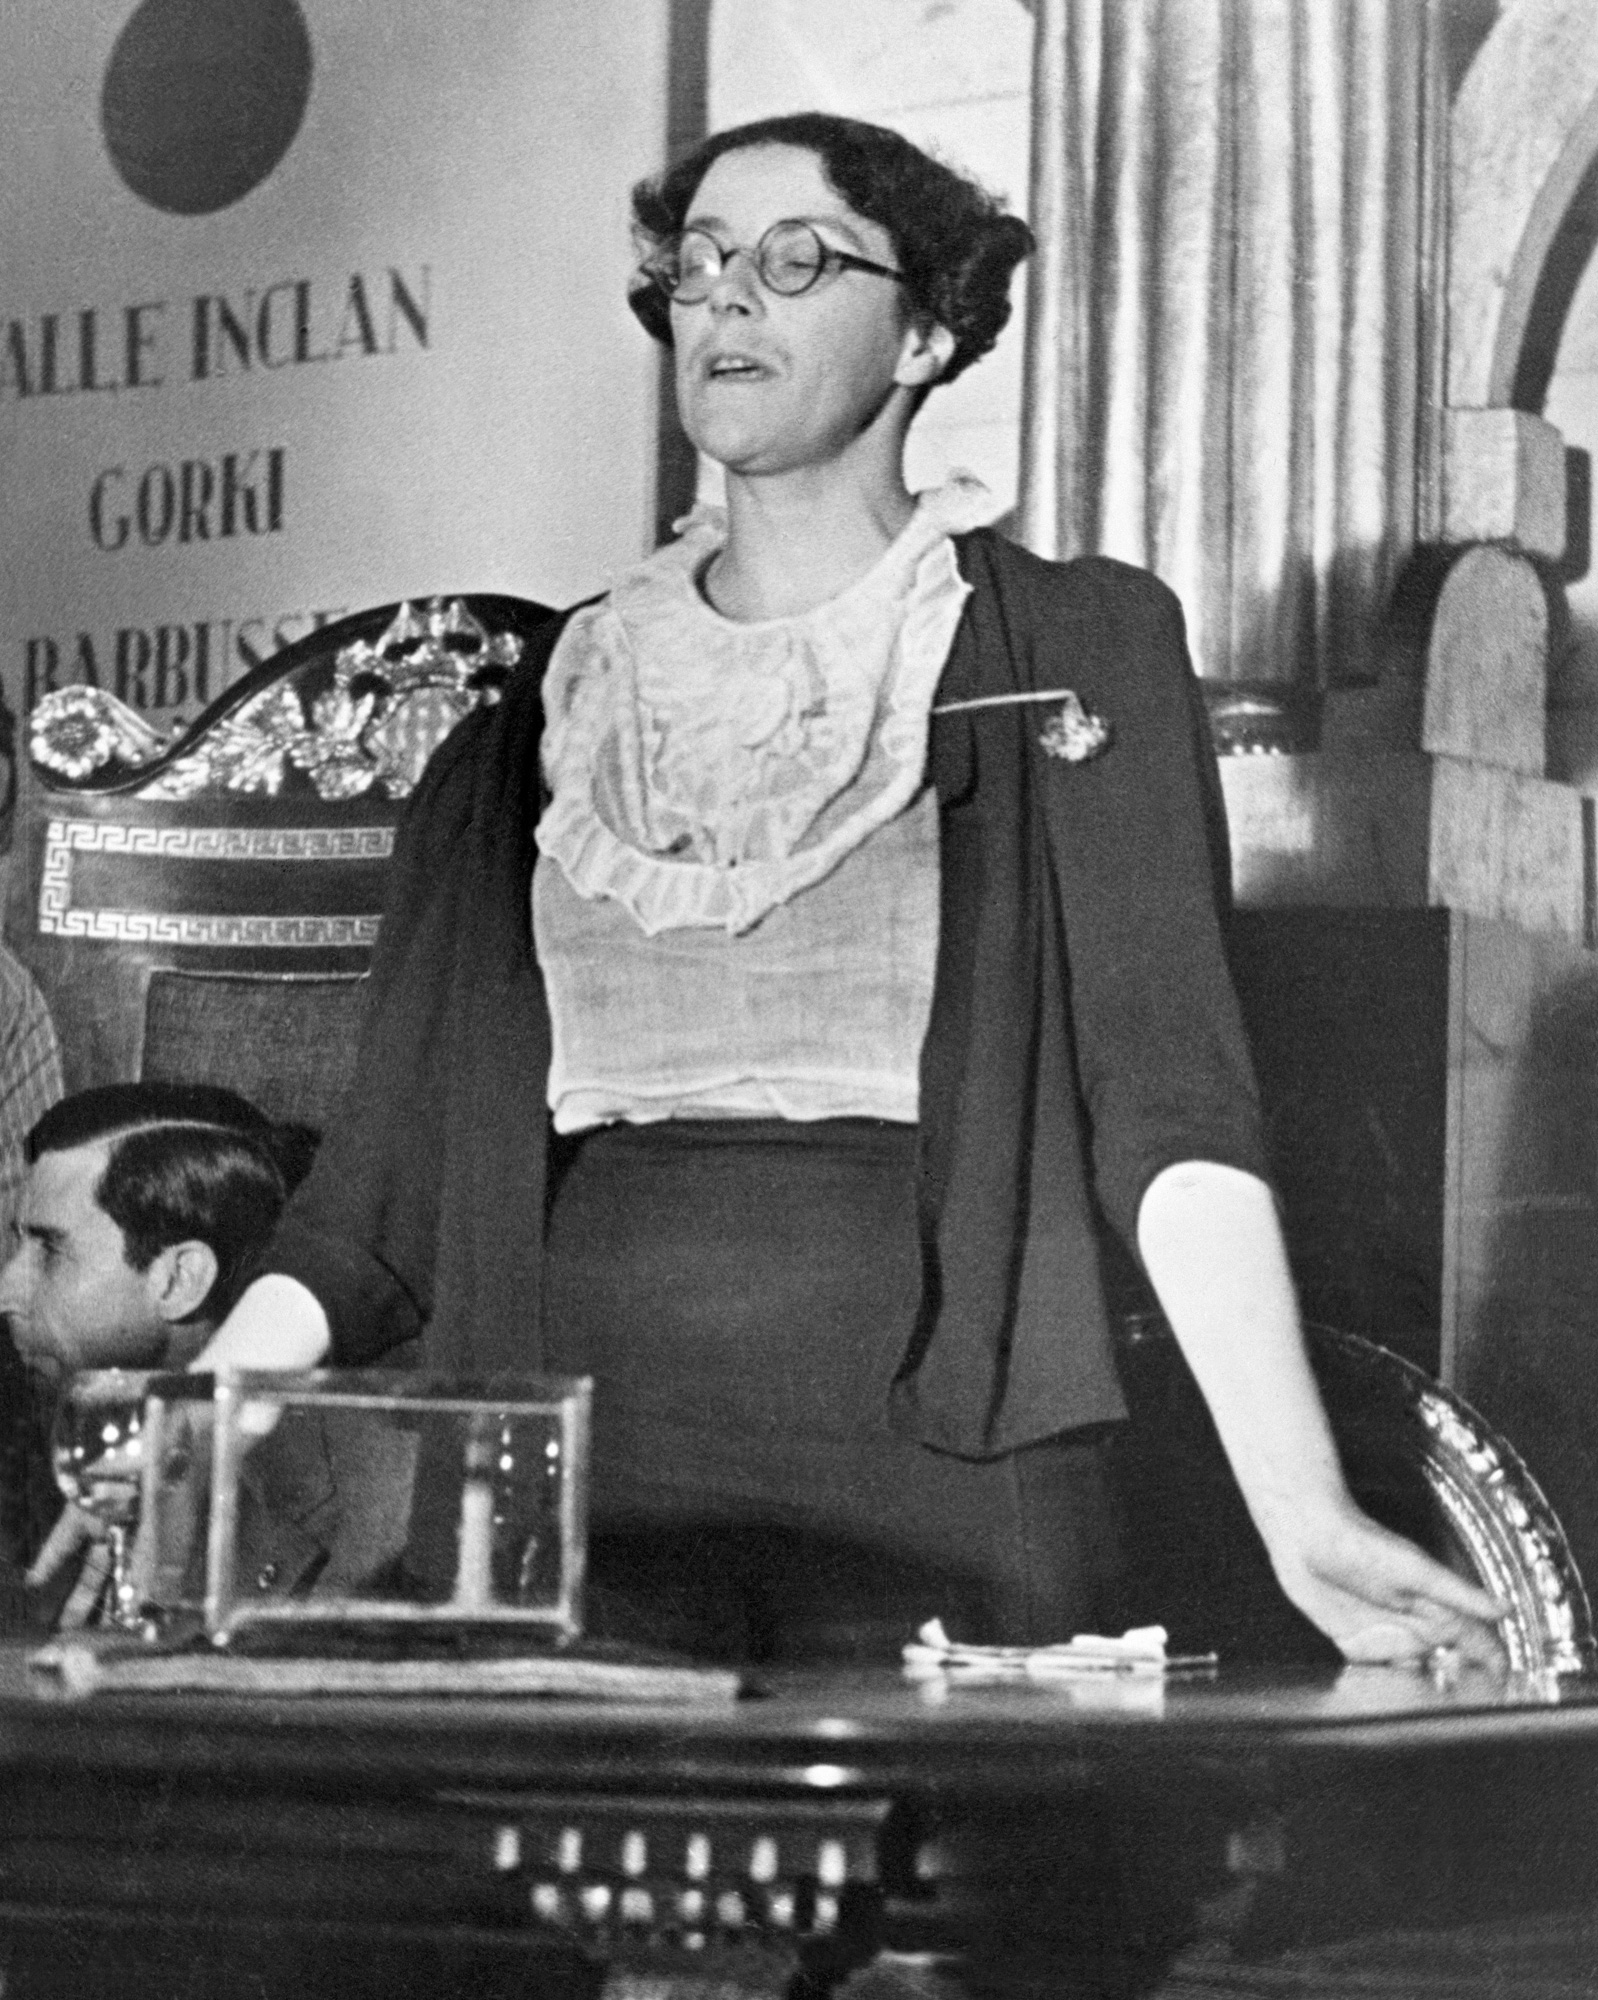 Photograph of Sylvia Townsend Warner at the International Congress of Writers by Gerda Taro